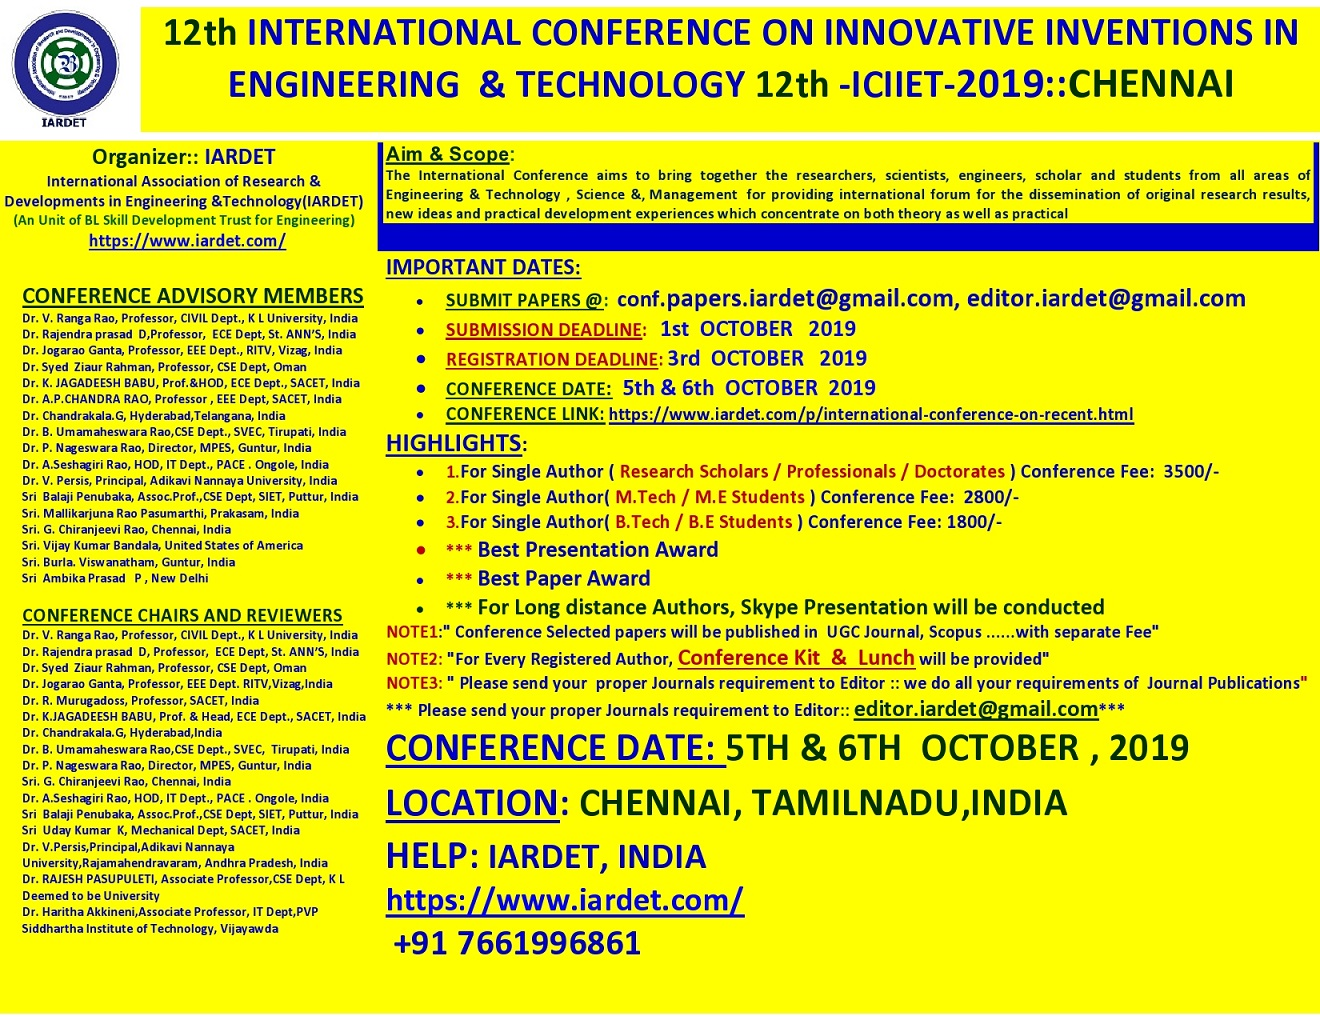 12th International Conference on Innovative Inventions in Engineering and Technology ICIIET 2019